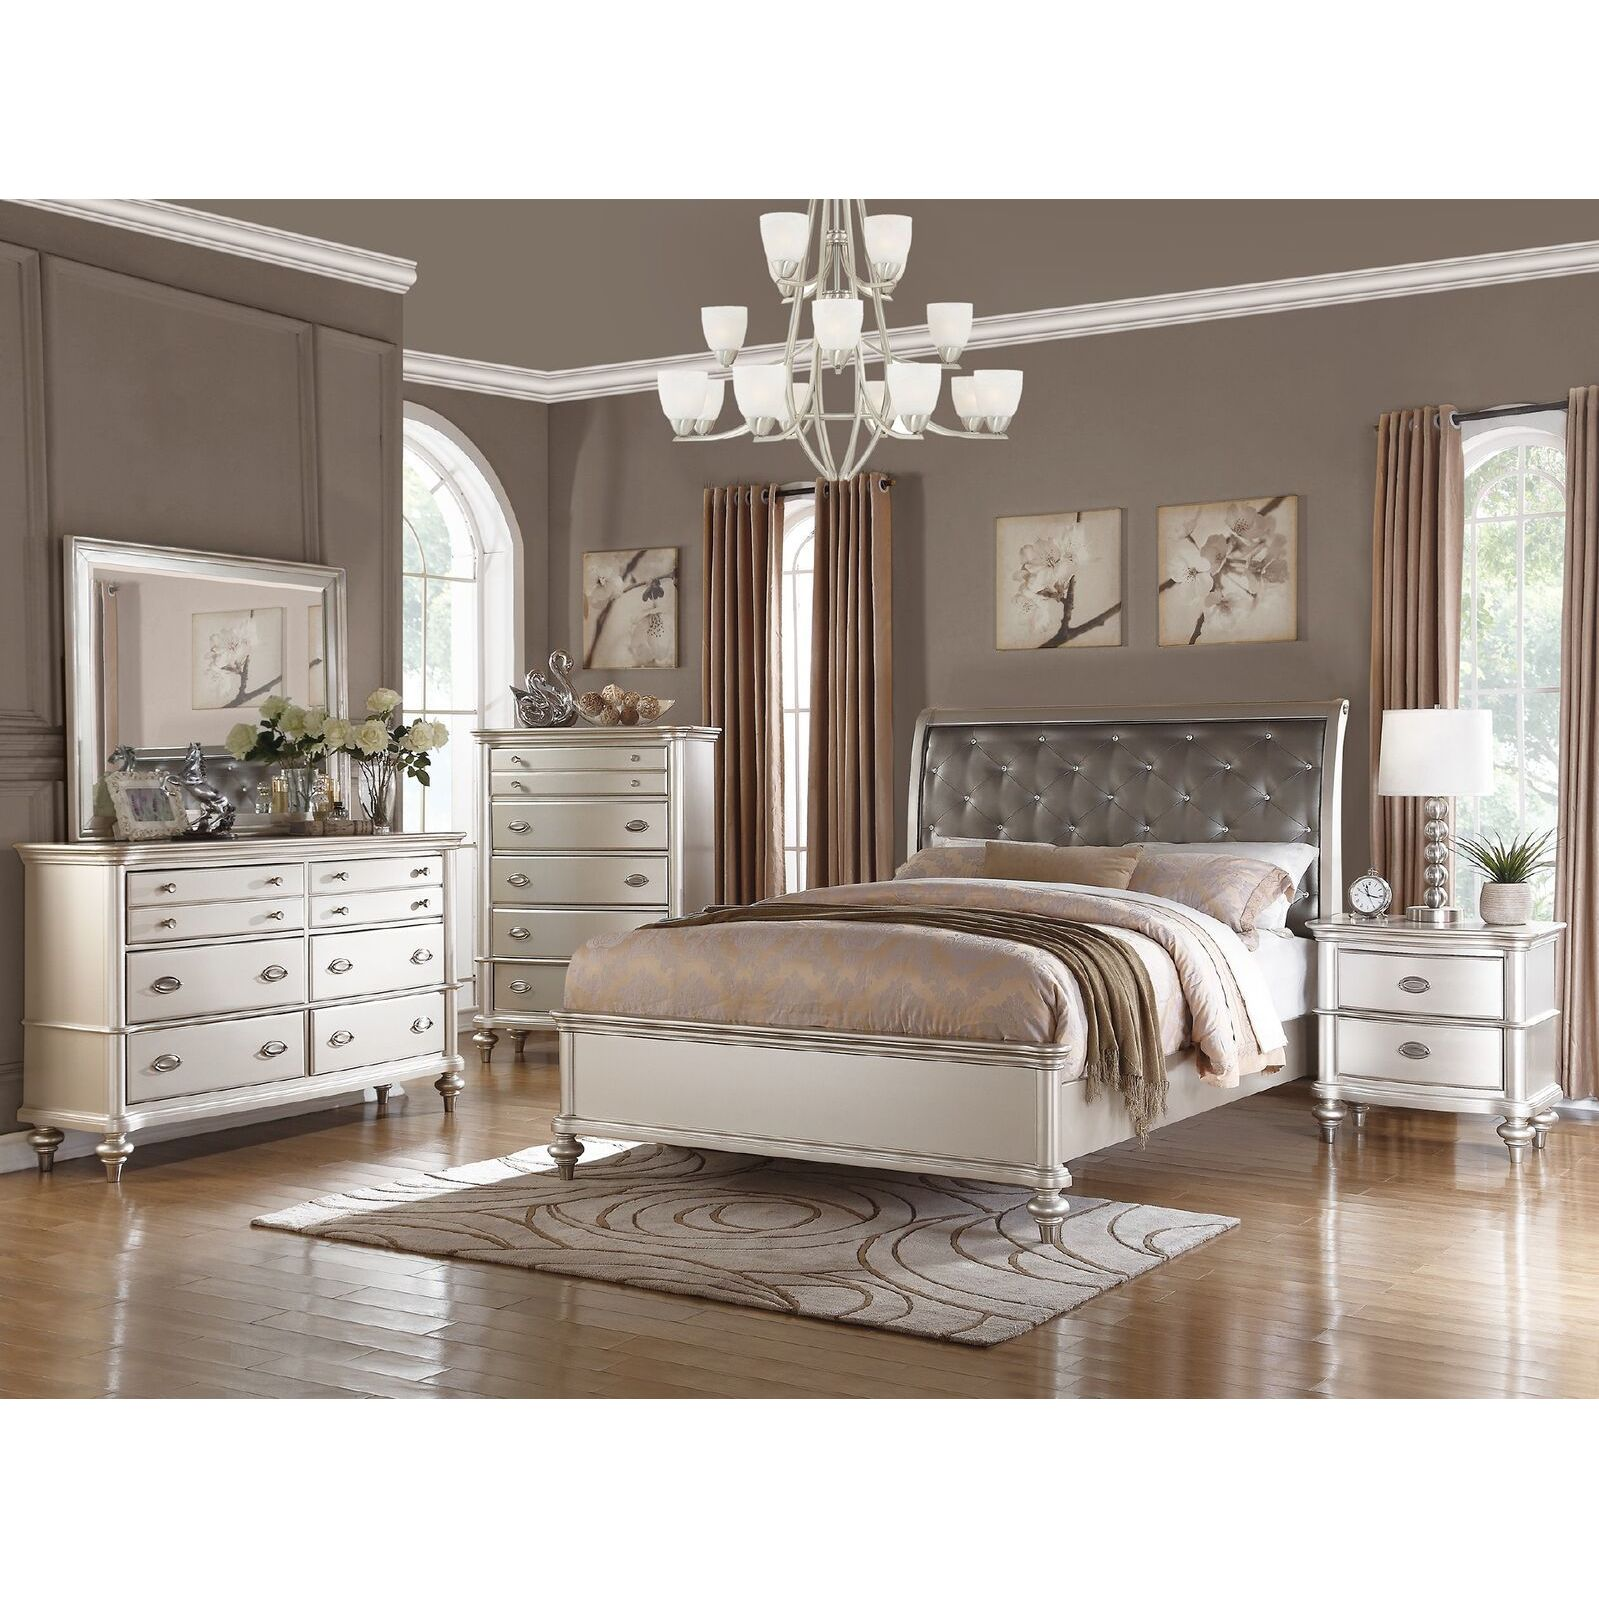 Furniture Overstock Shop Saveria 6 Piece Silver Bedroom Furniture Set Free Shipping